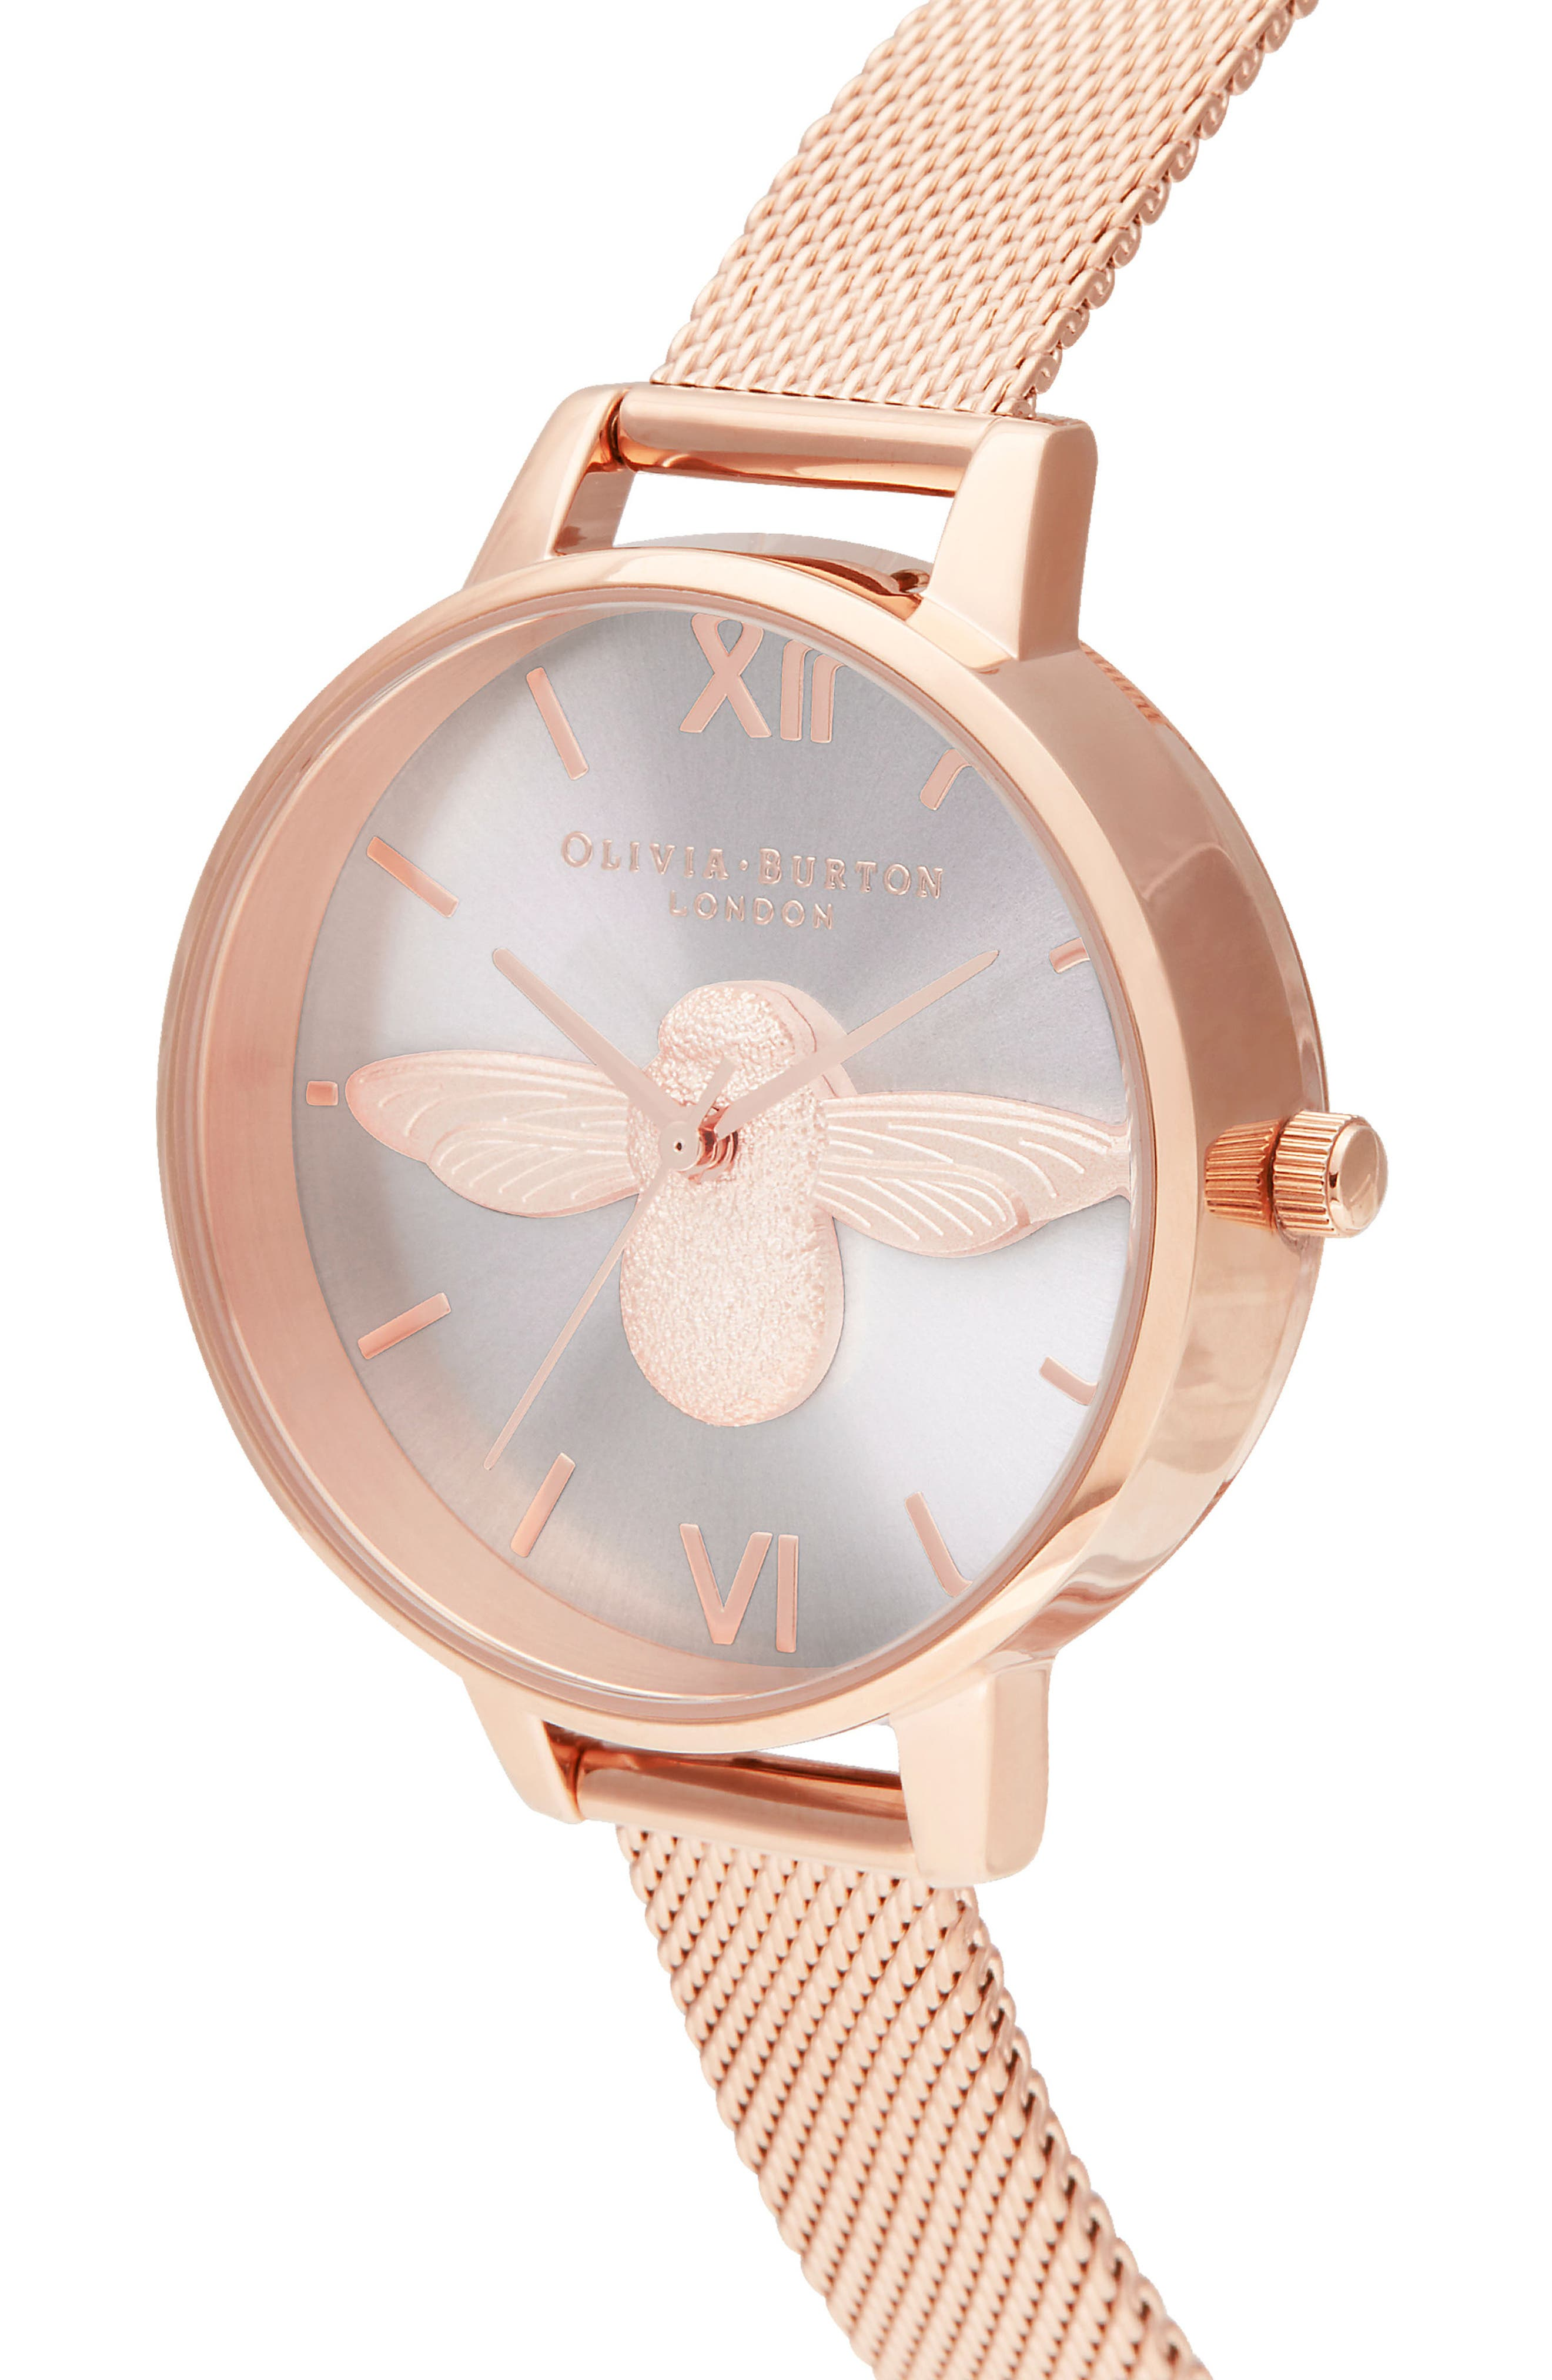 3D Bee Mesh Strap Watch, 34mm,                             Alternate thumbnail 4, color,                             ROSE GOLD/SUNRAY/ ROSE GOLD